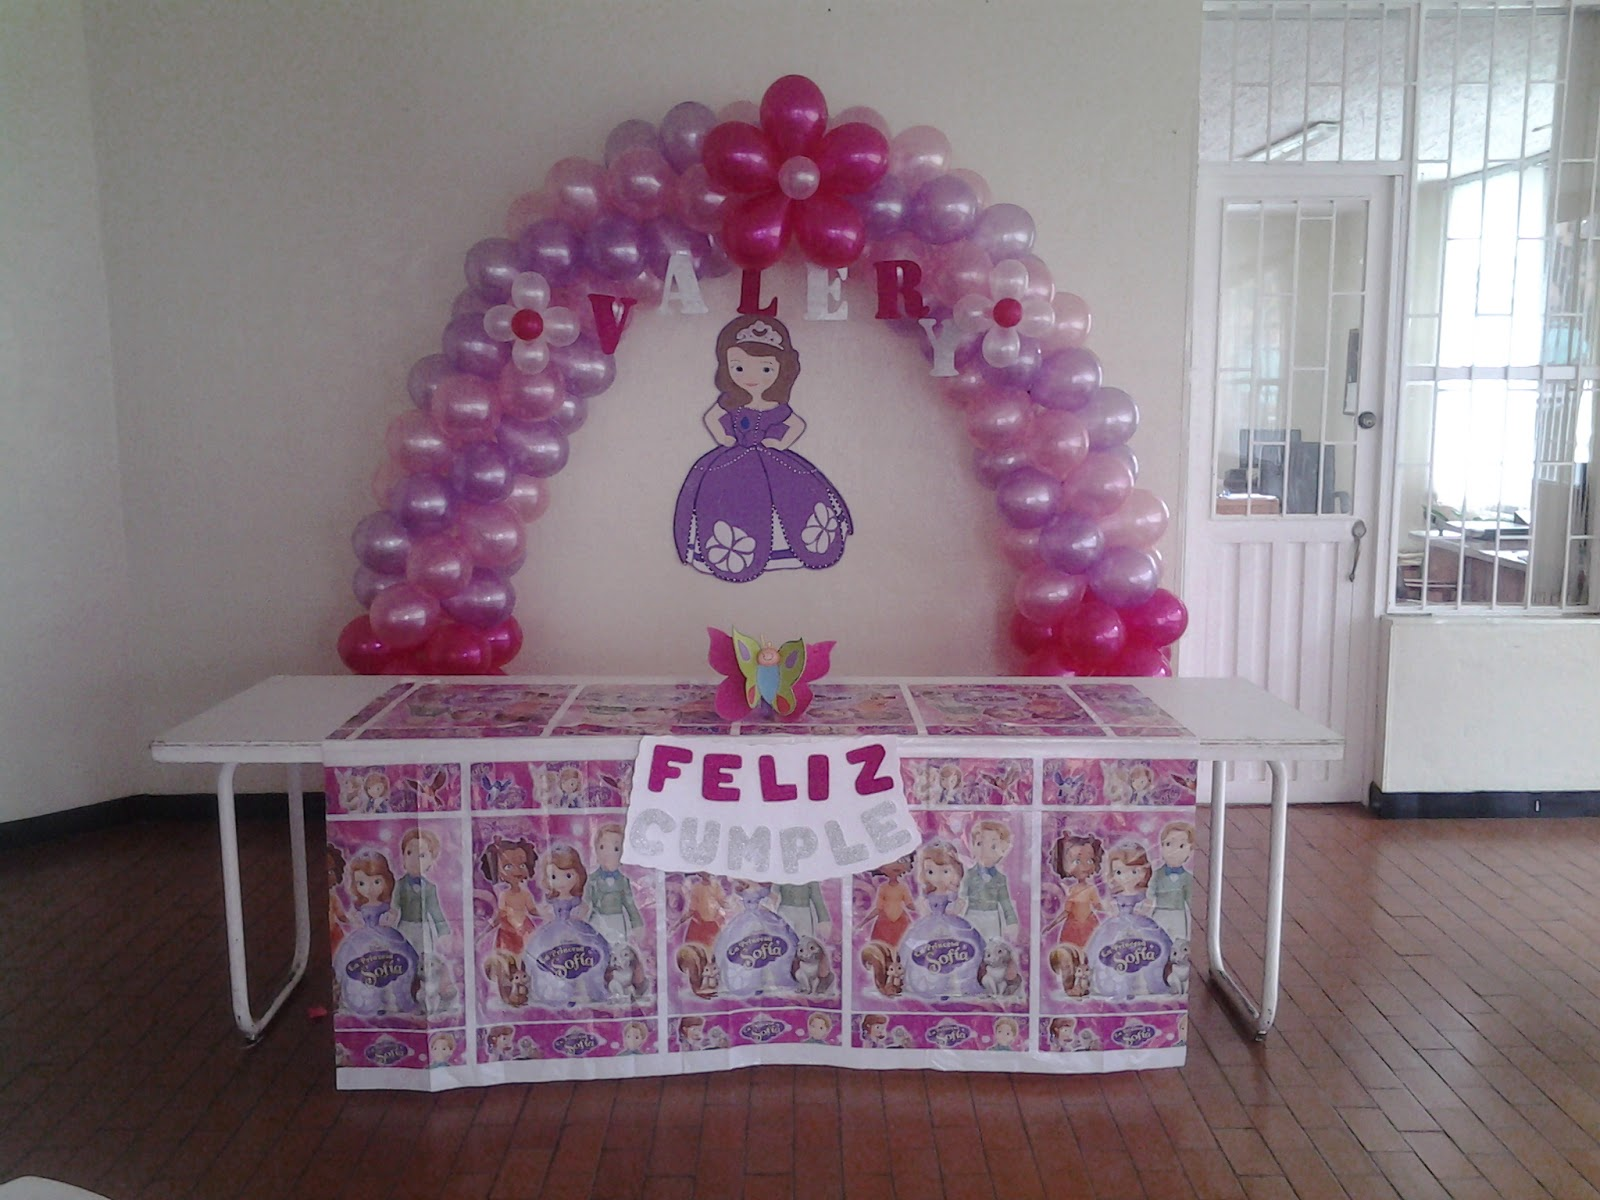 Empapel arte y decoraciones decoraci n cumplea os for Decoracion cumpleanos princesas